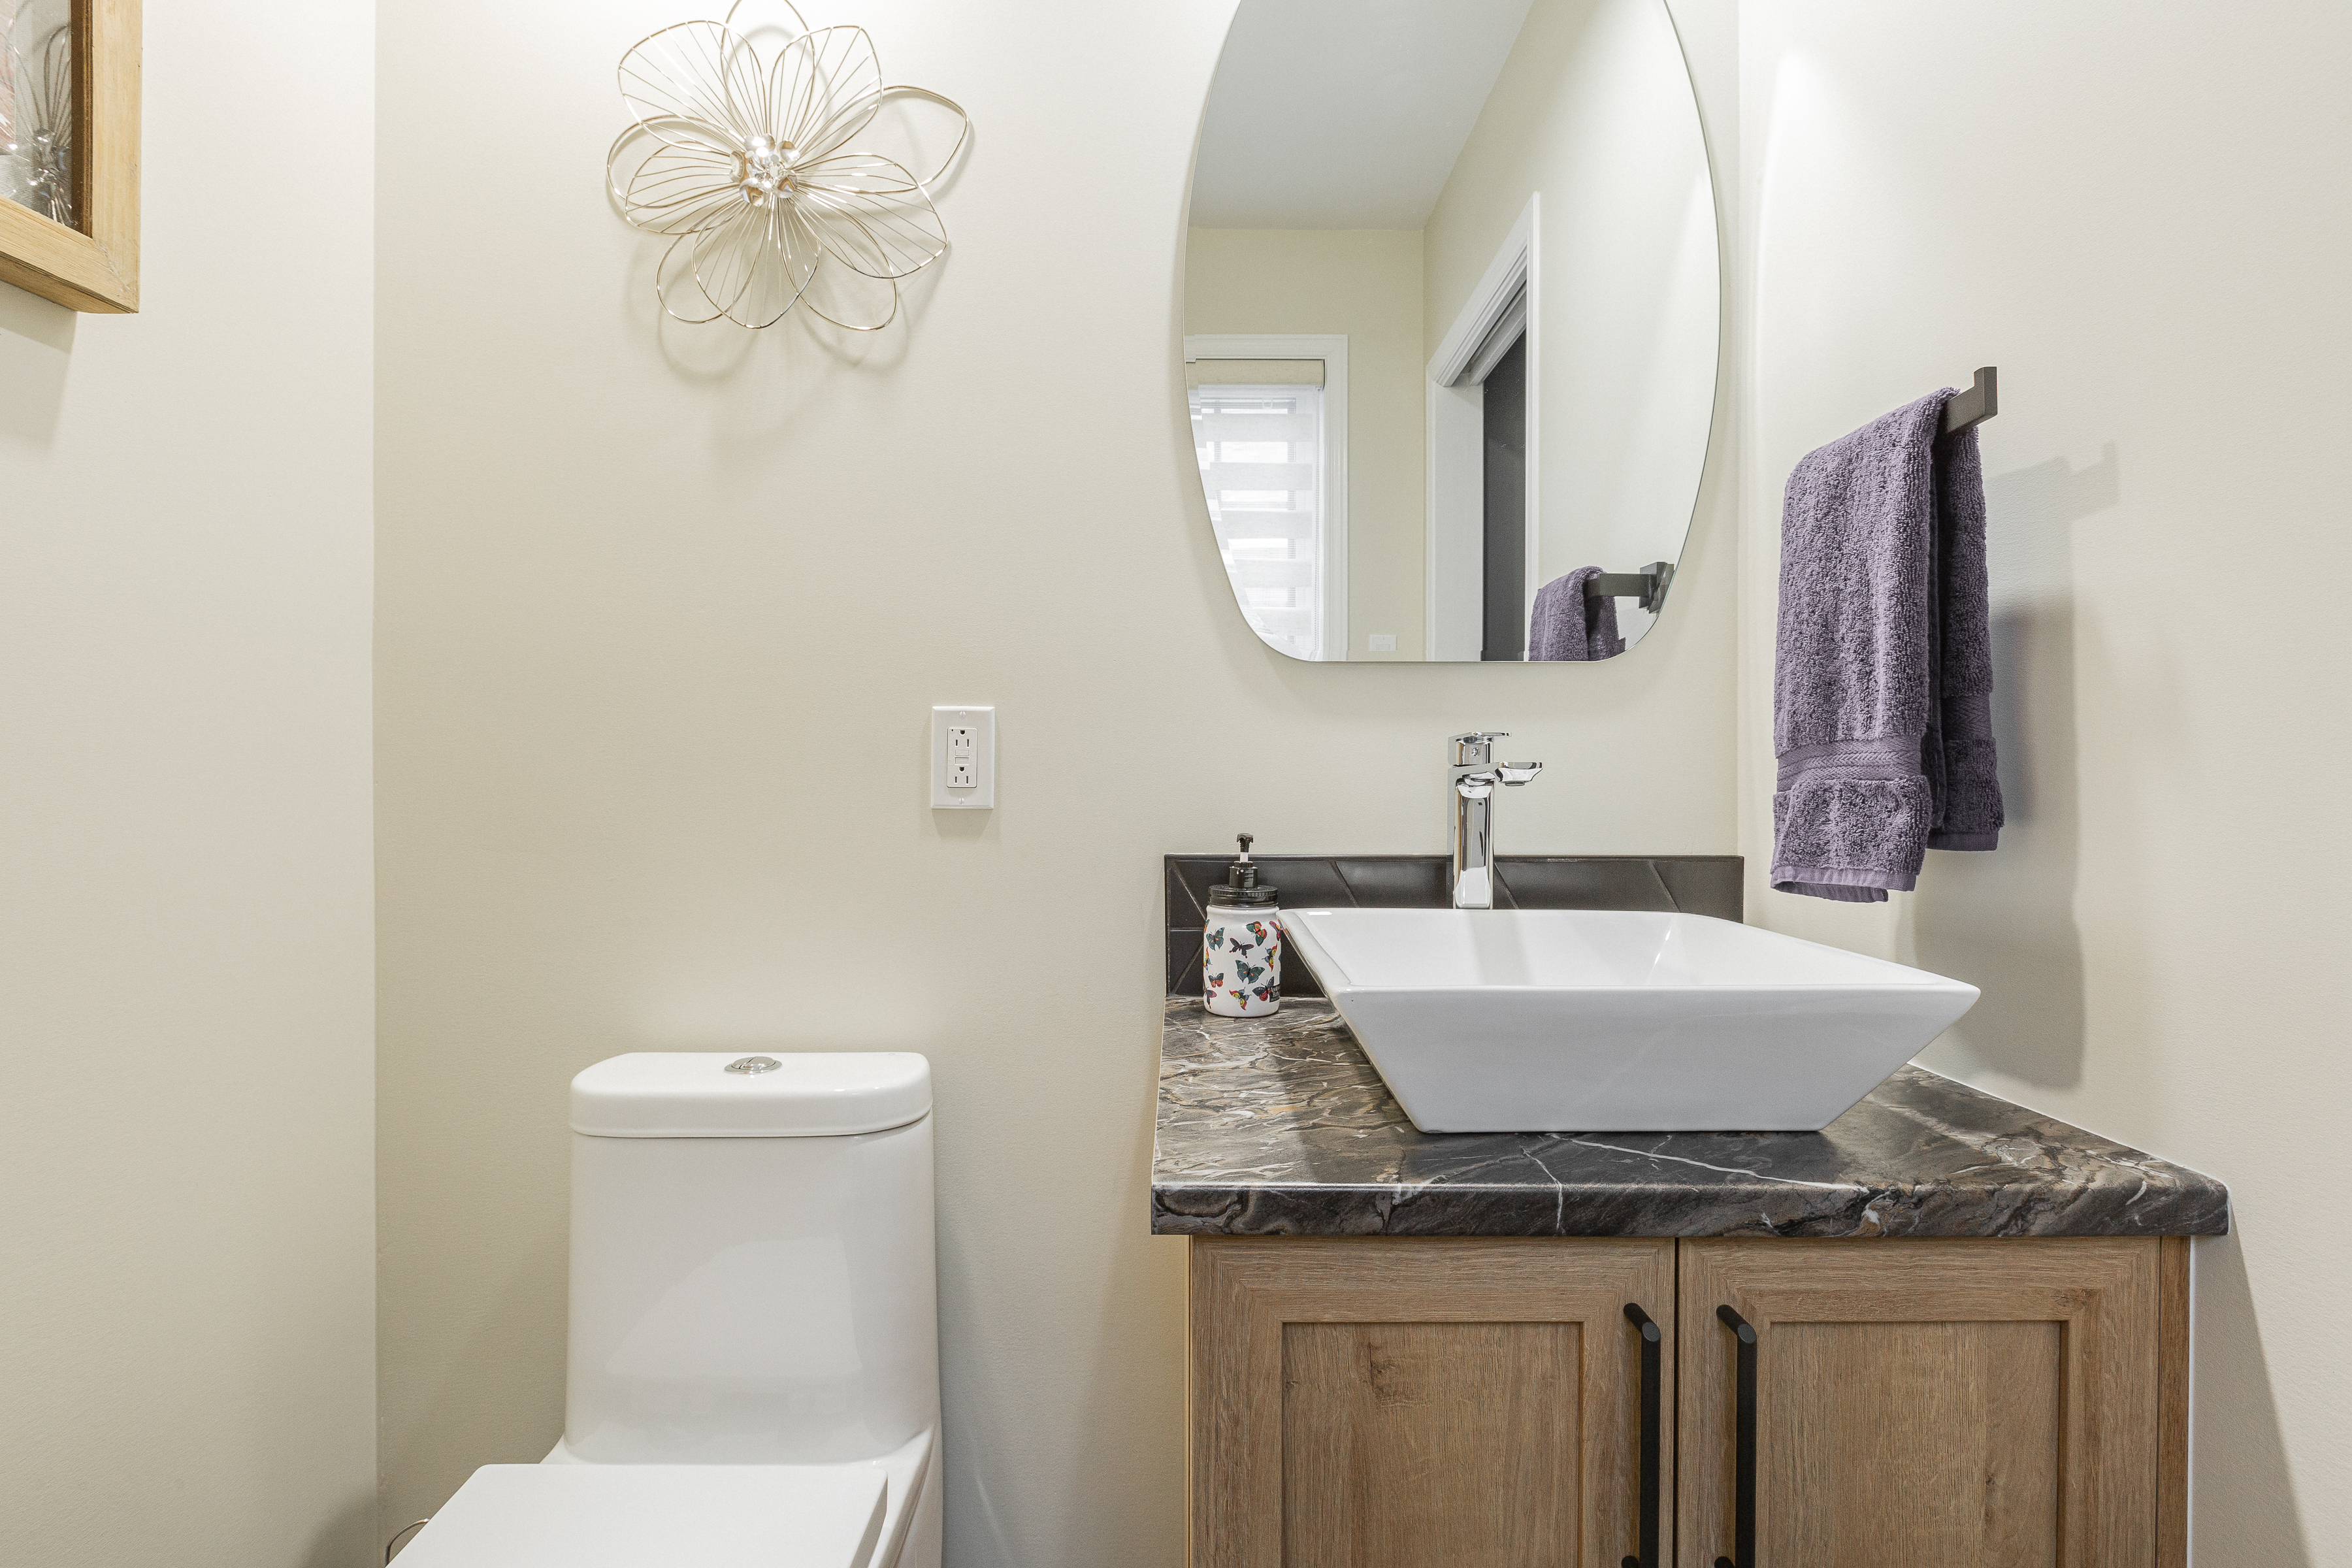 renovated powder room with a toilet and a wooden vanity